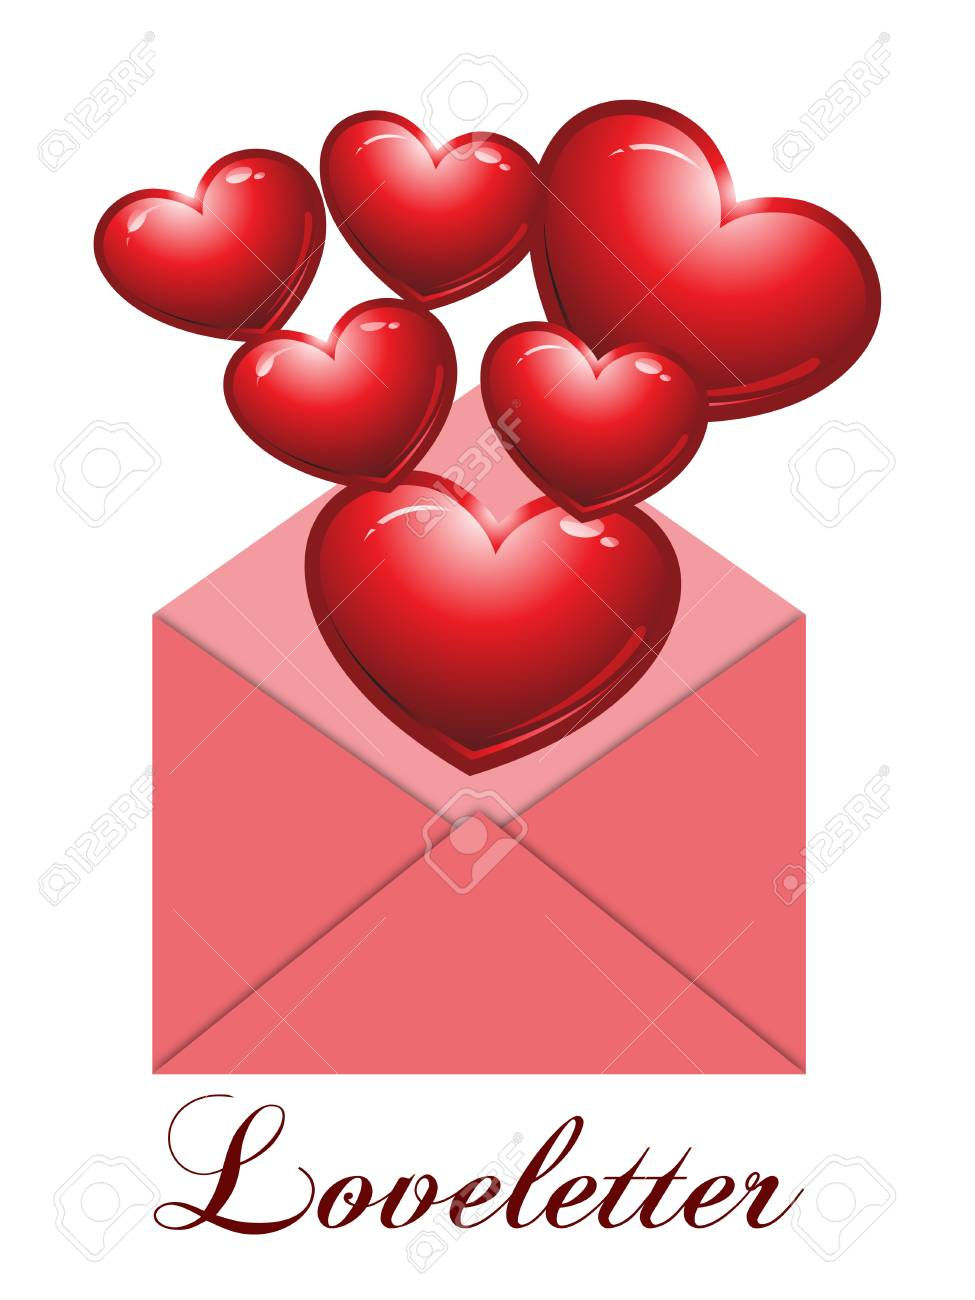 Loveletter Stock Vector - 16335904